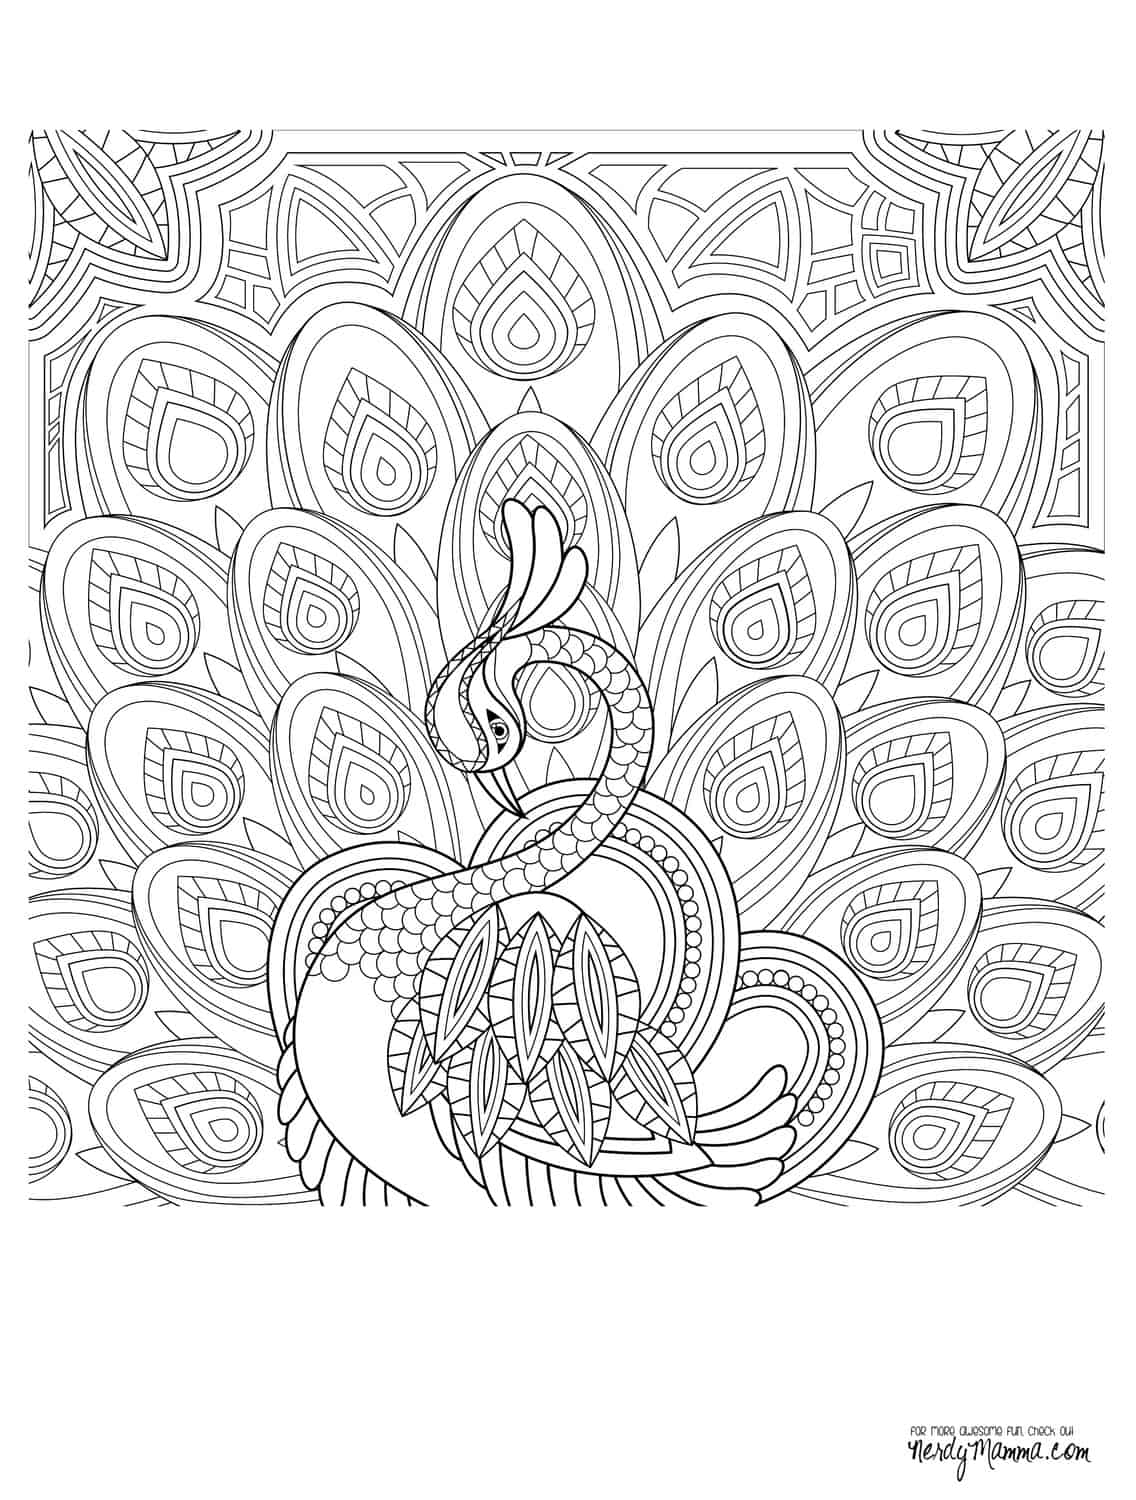 Coloring Pages Of Birds For Adults | 1500x1136